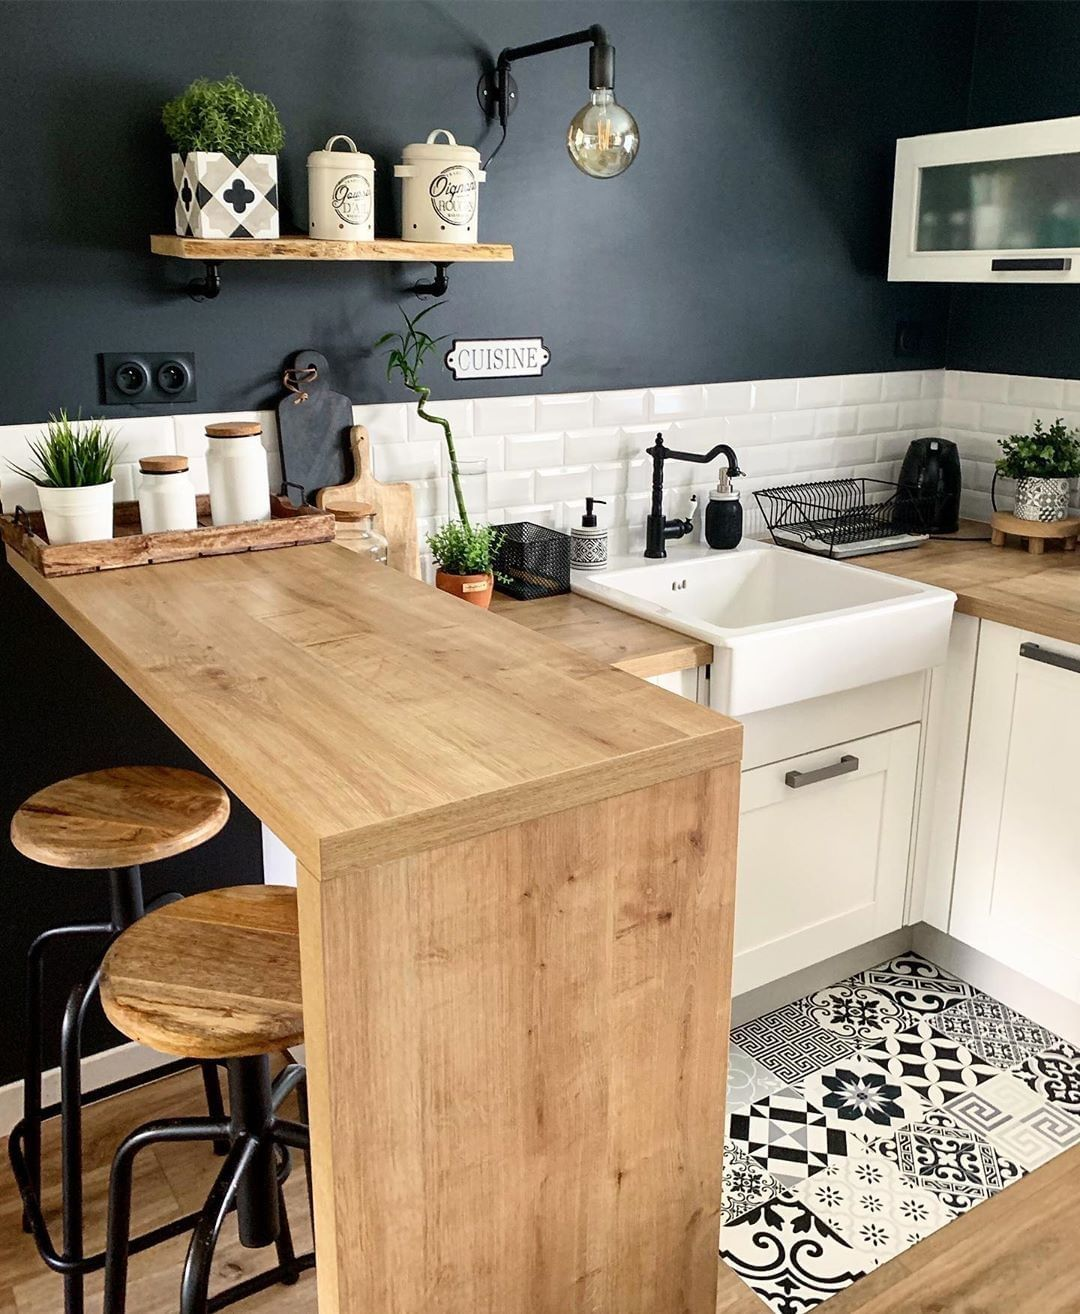 Online Furniture Shopping Made Easy   Kitchen design small ...